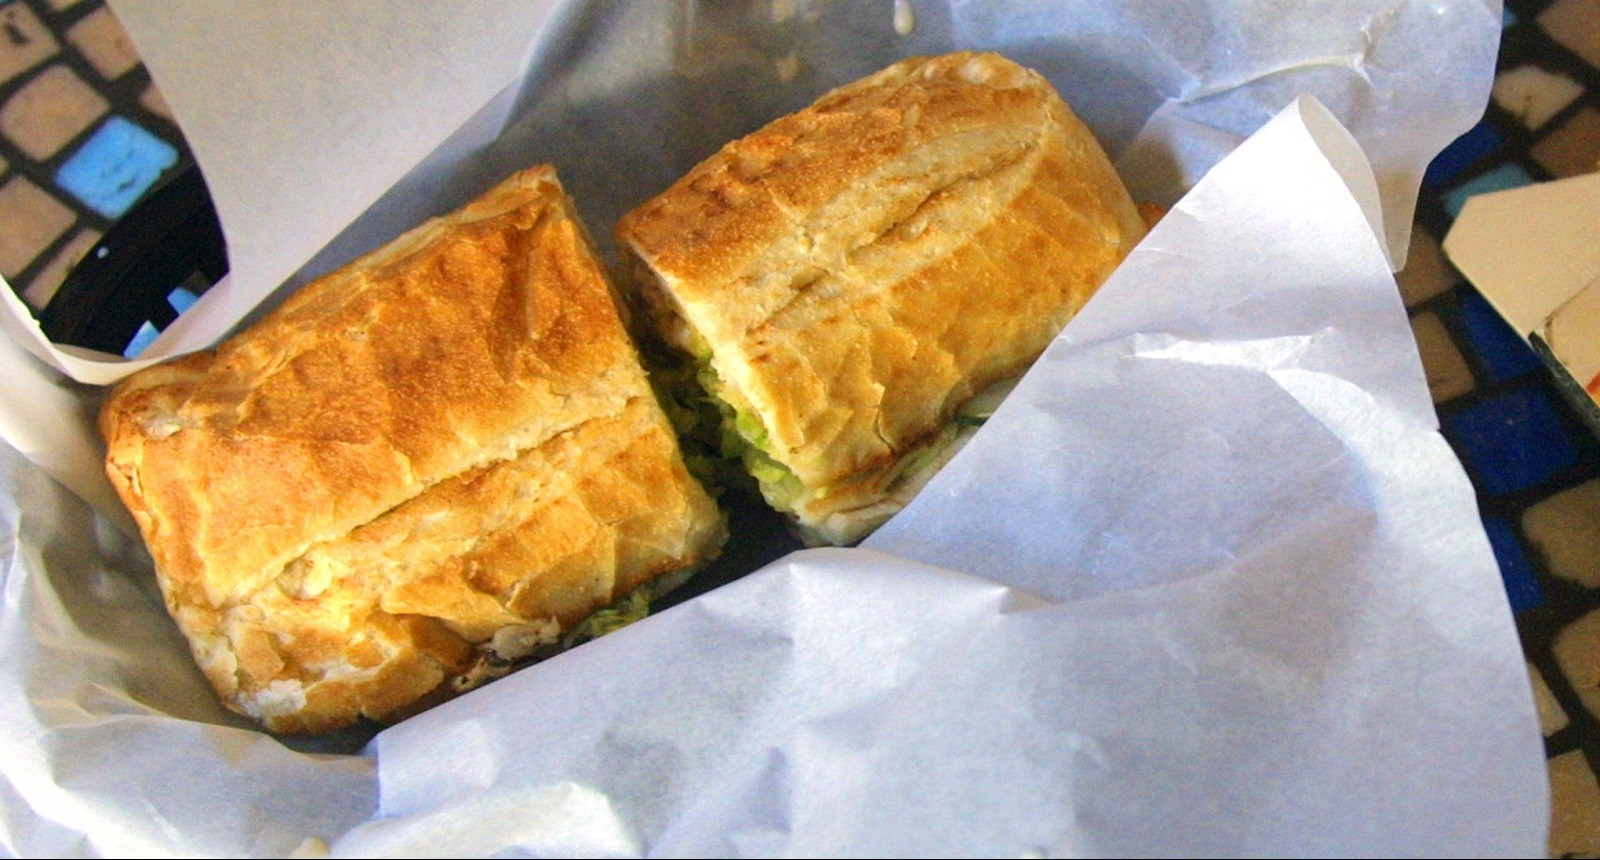 A sandwich from Potbelly Sandwich Shop, which is looking to move into the Buffalo market. (Getty Images)